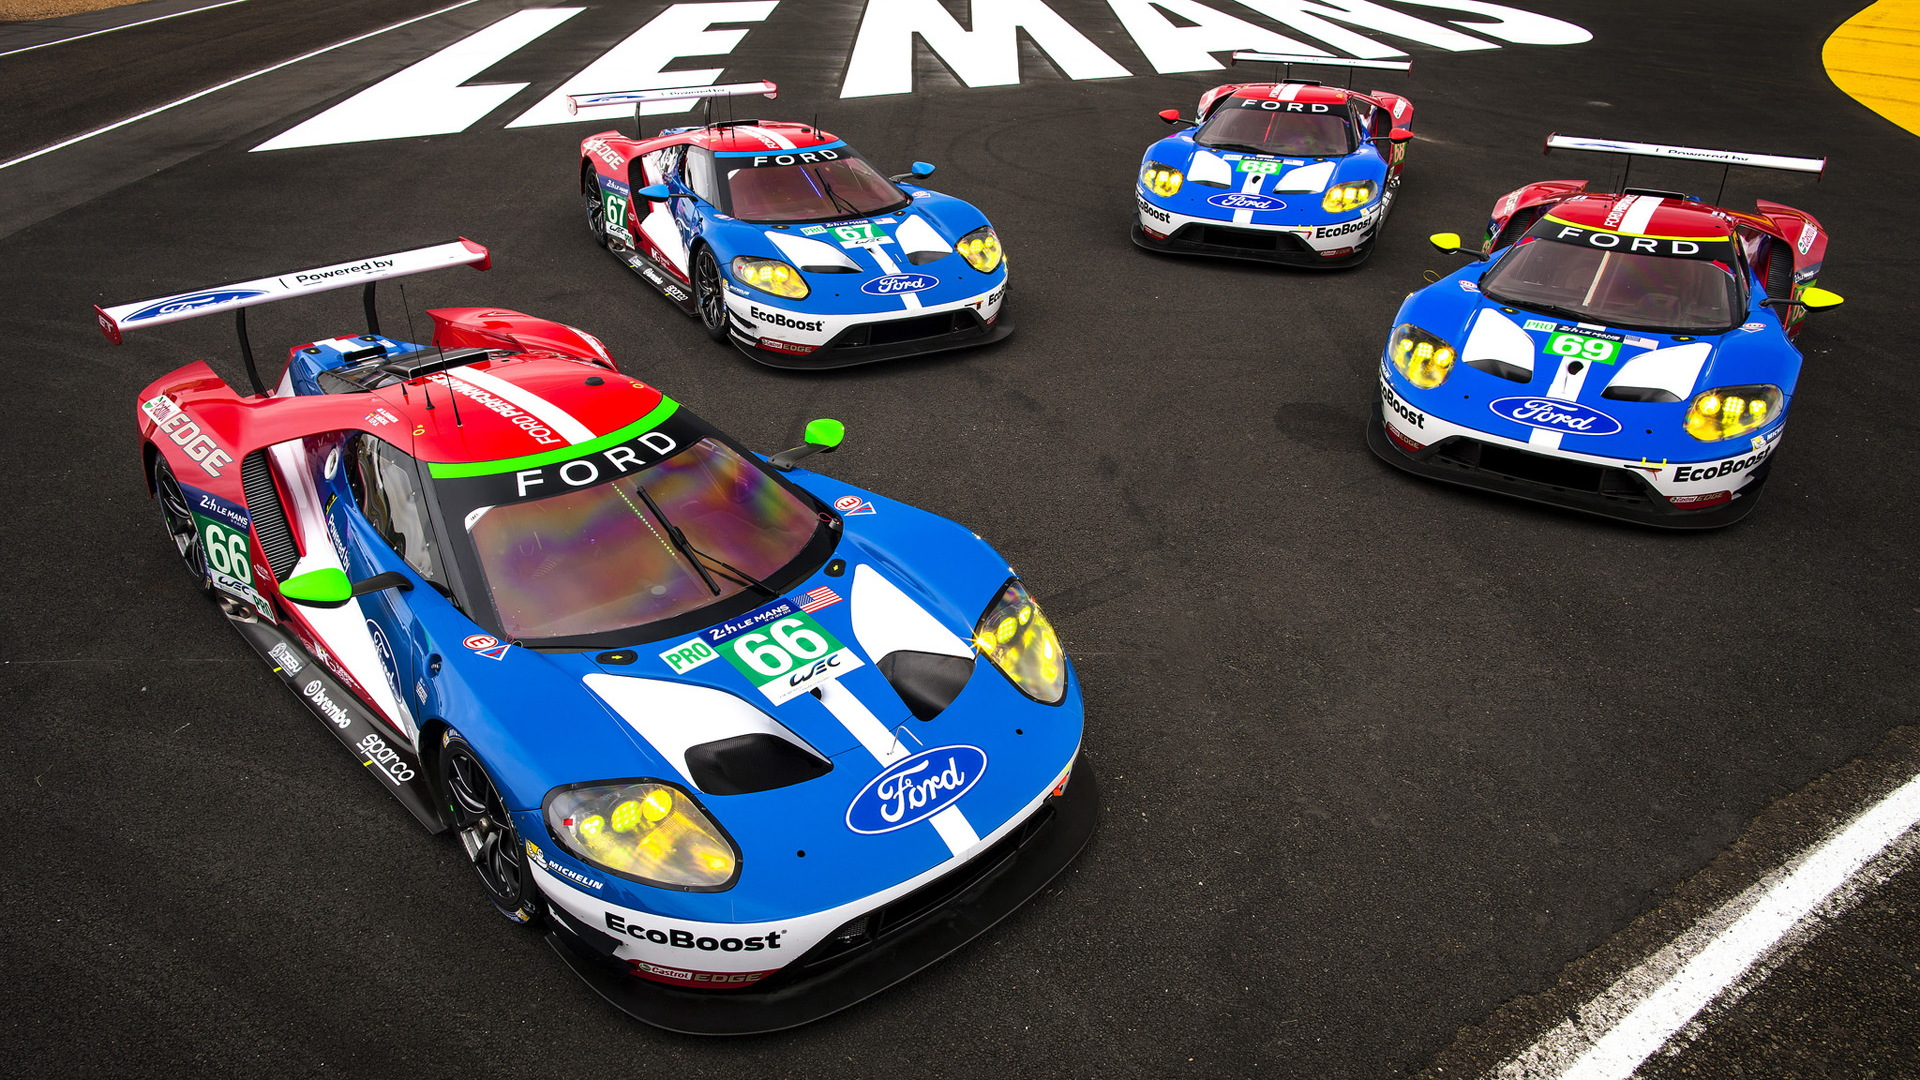 Ford GTs at the 2016 24 Hours of Le Mans